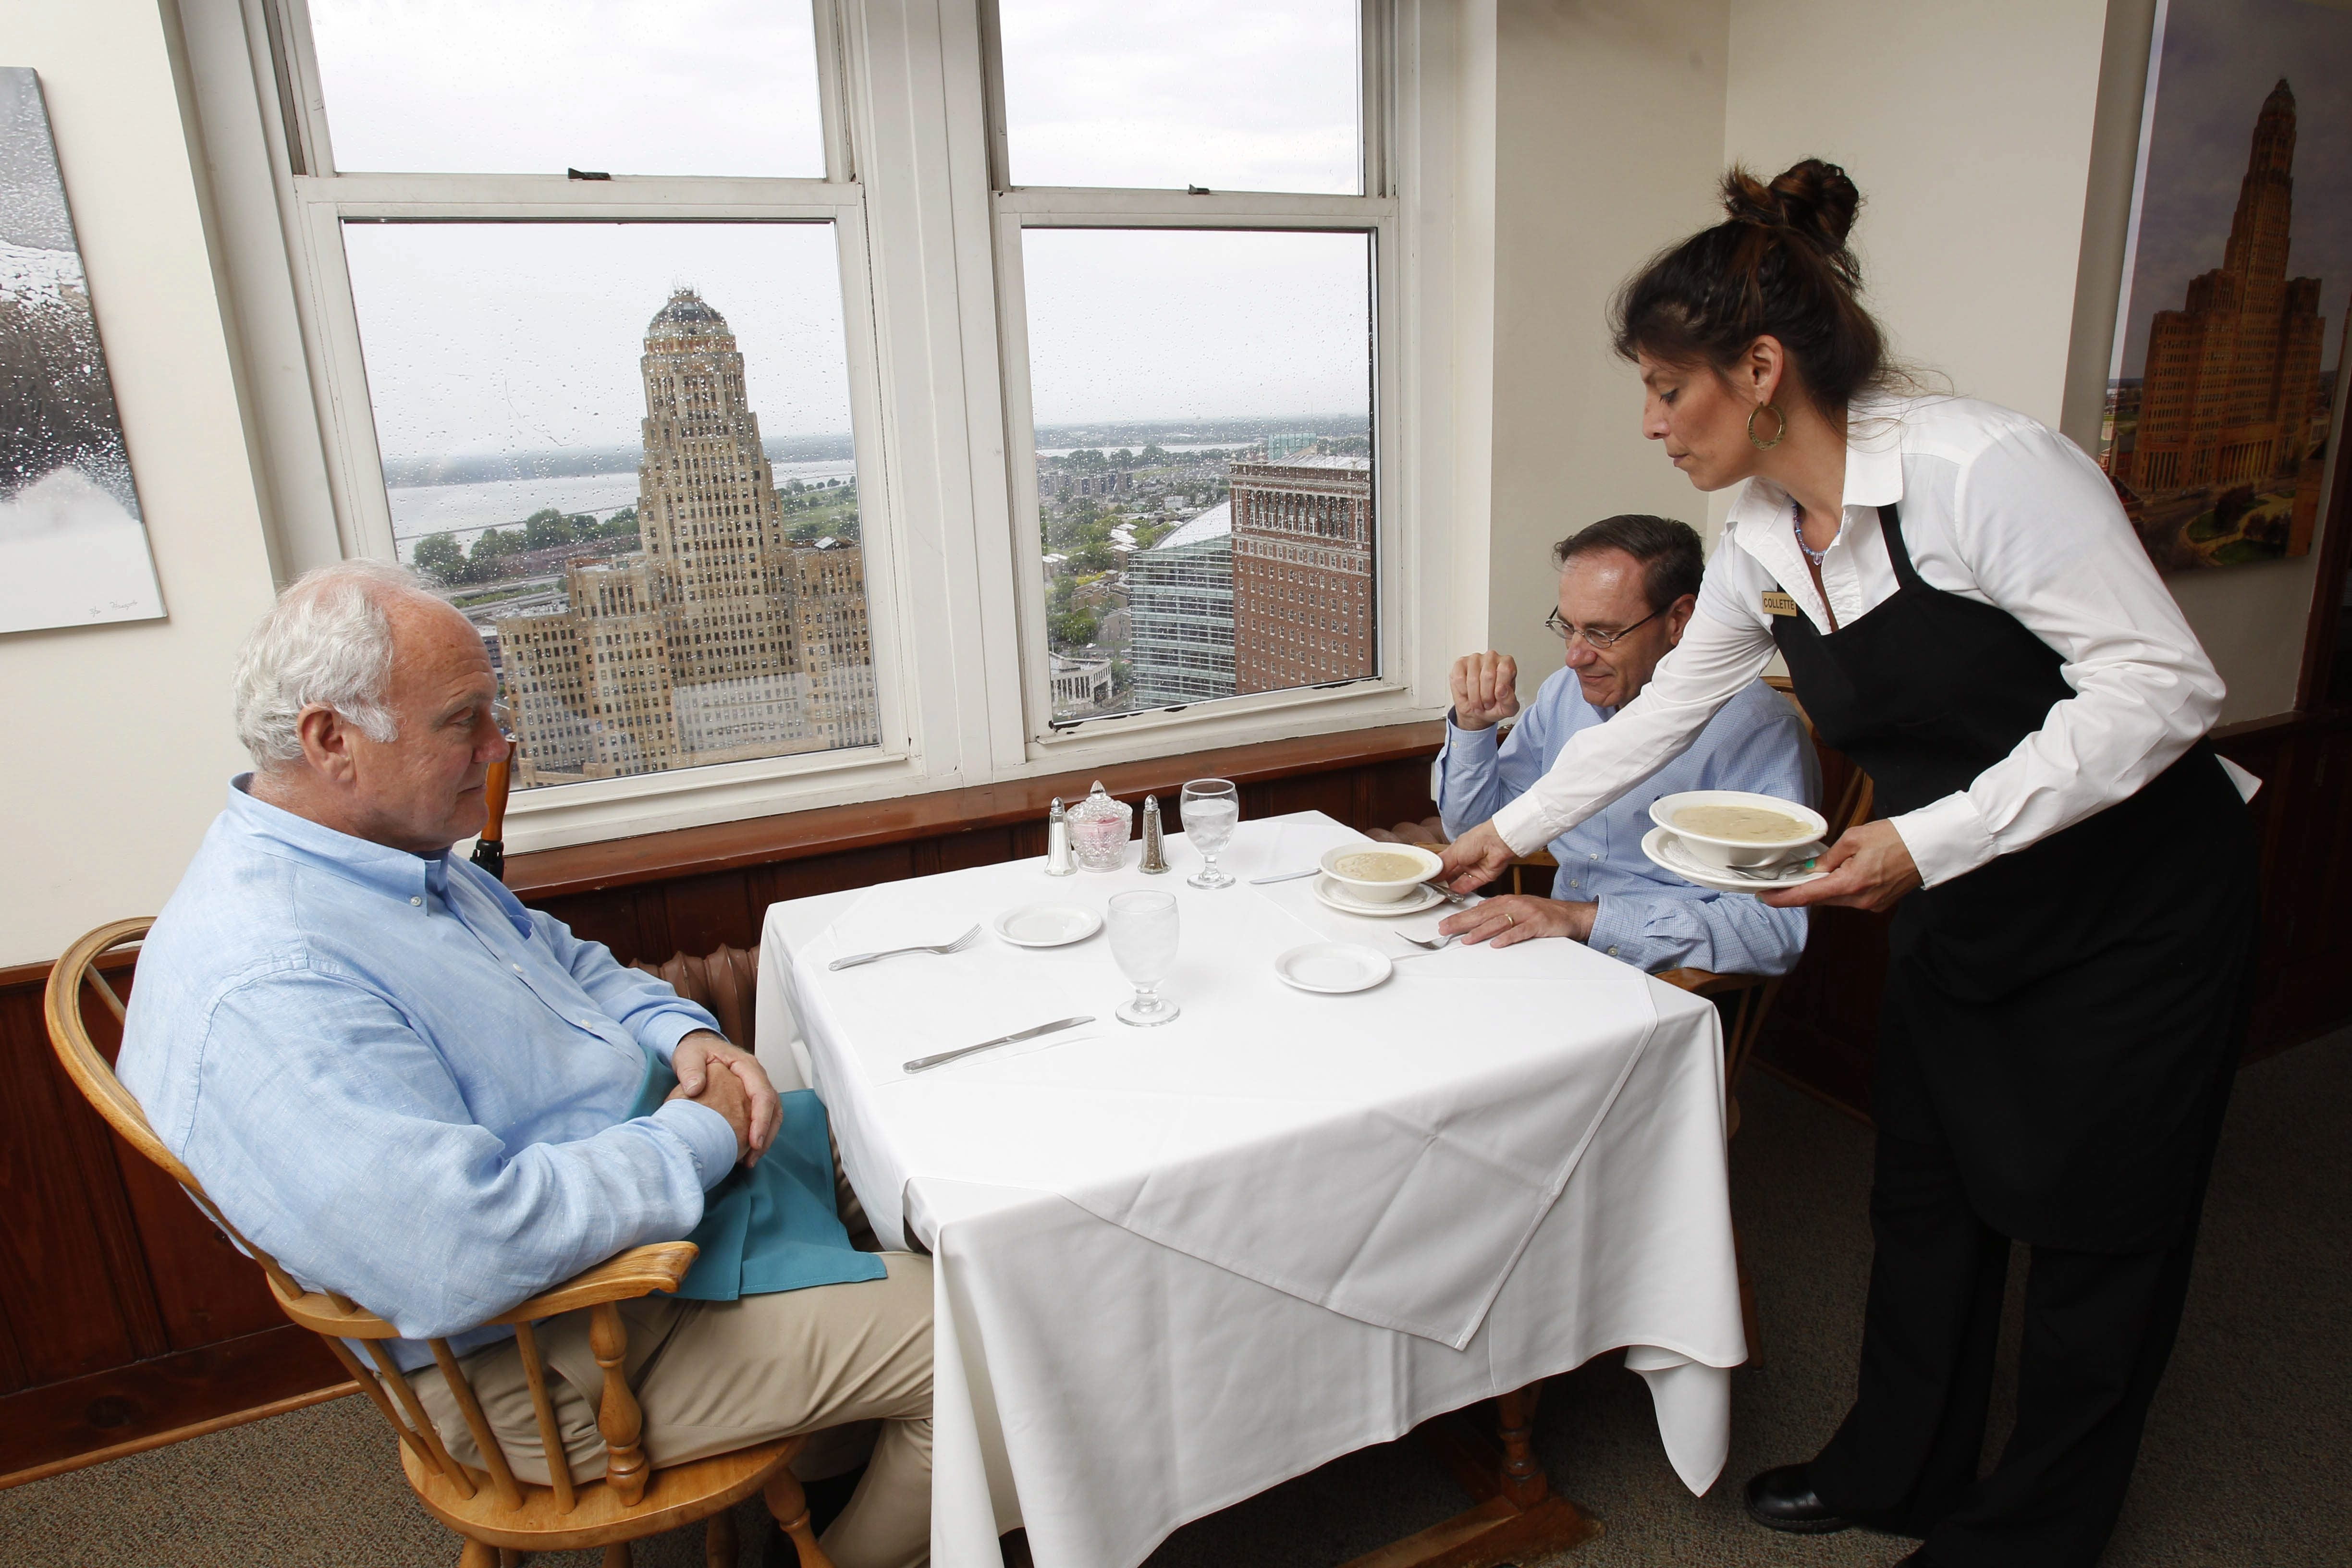 The Mid-Day Club, a lunchtime restaurant on the 21st floor of the Liberty Building, was founded in 1936. As its membership has dwindled over the years, the club, known for its great food and fantastic views of downtown, is trying to recruit new members.